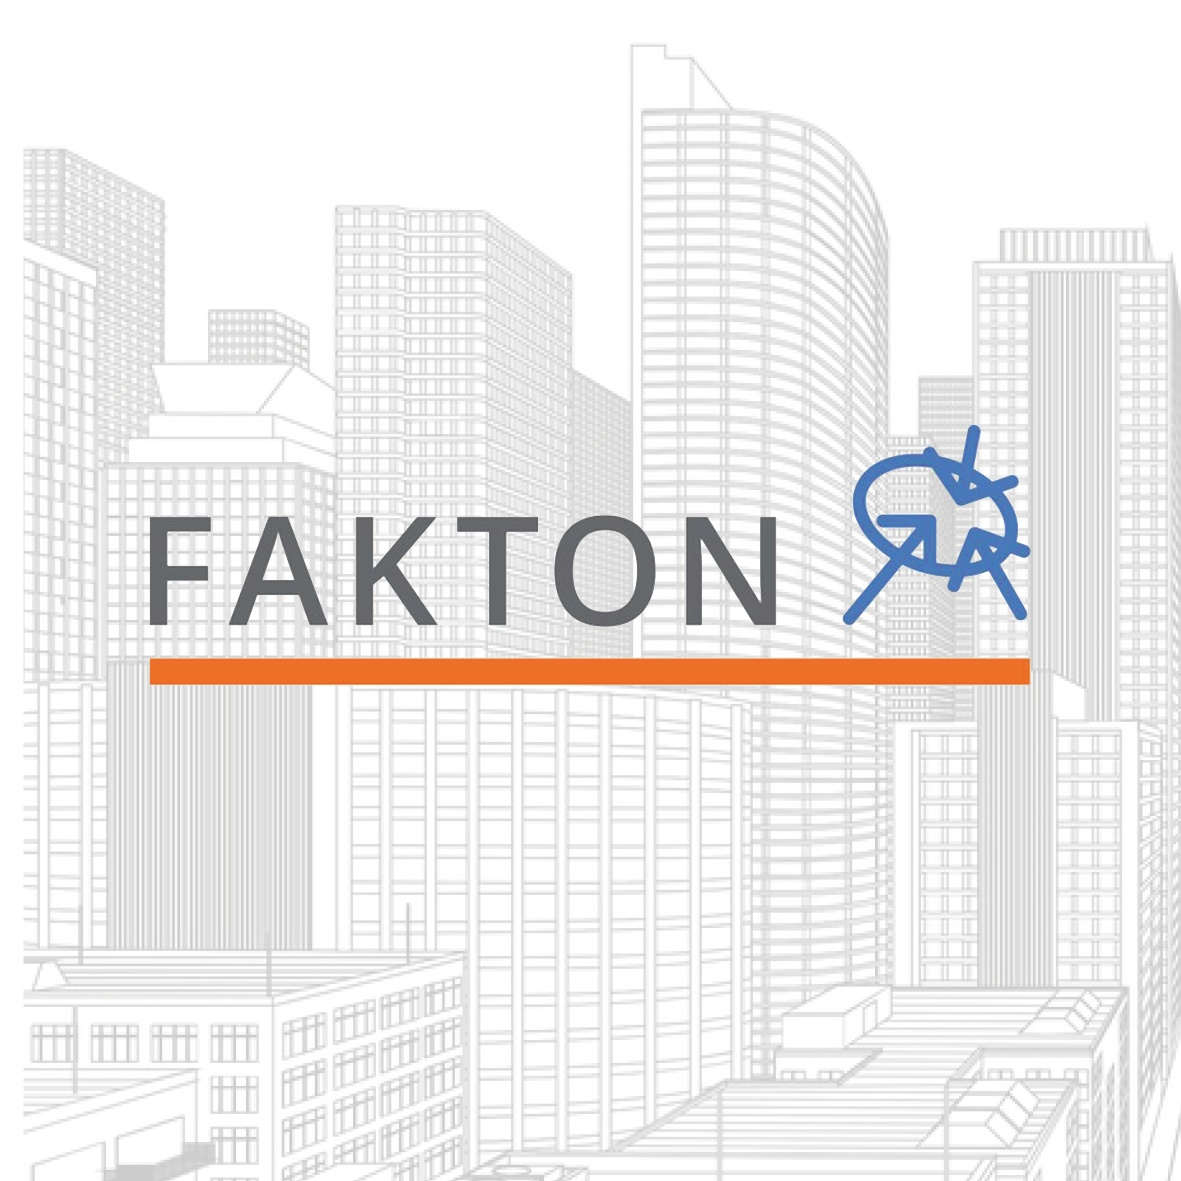 Fakton Newsarticle